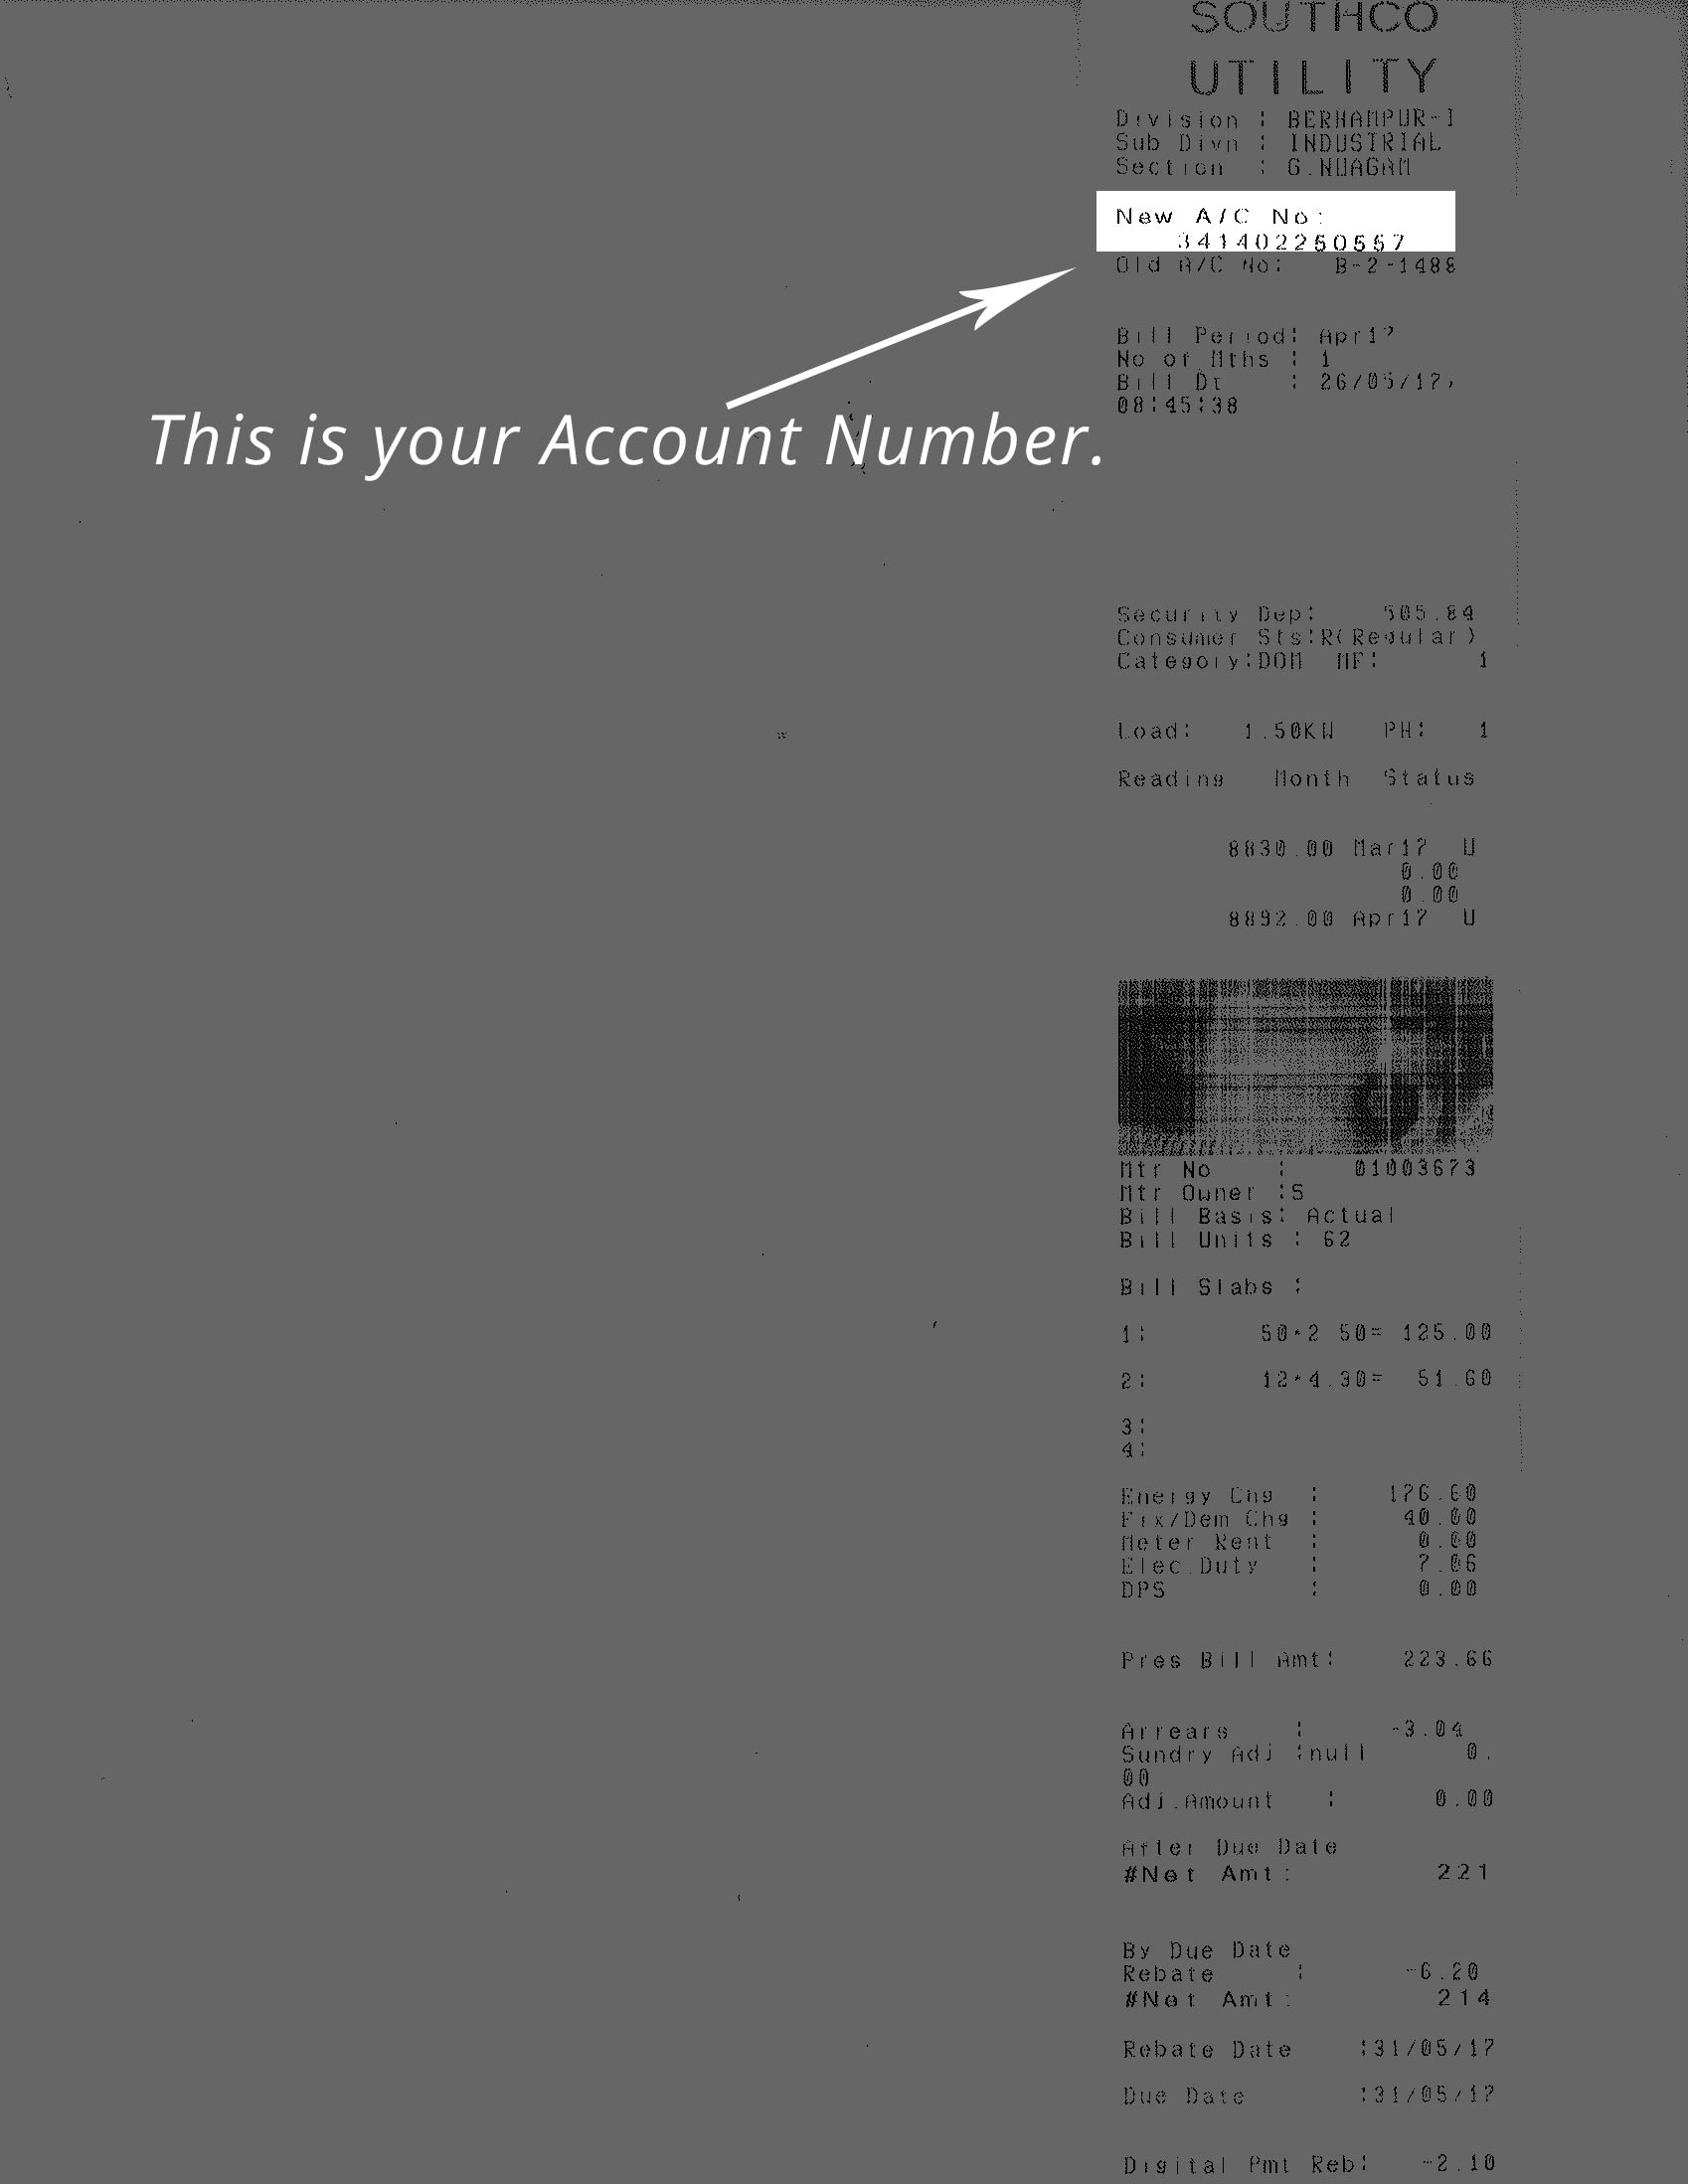 SOUTHCO Bill Payment - Pay SOUTHCO Utility Electricity Bill